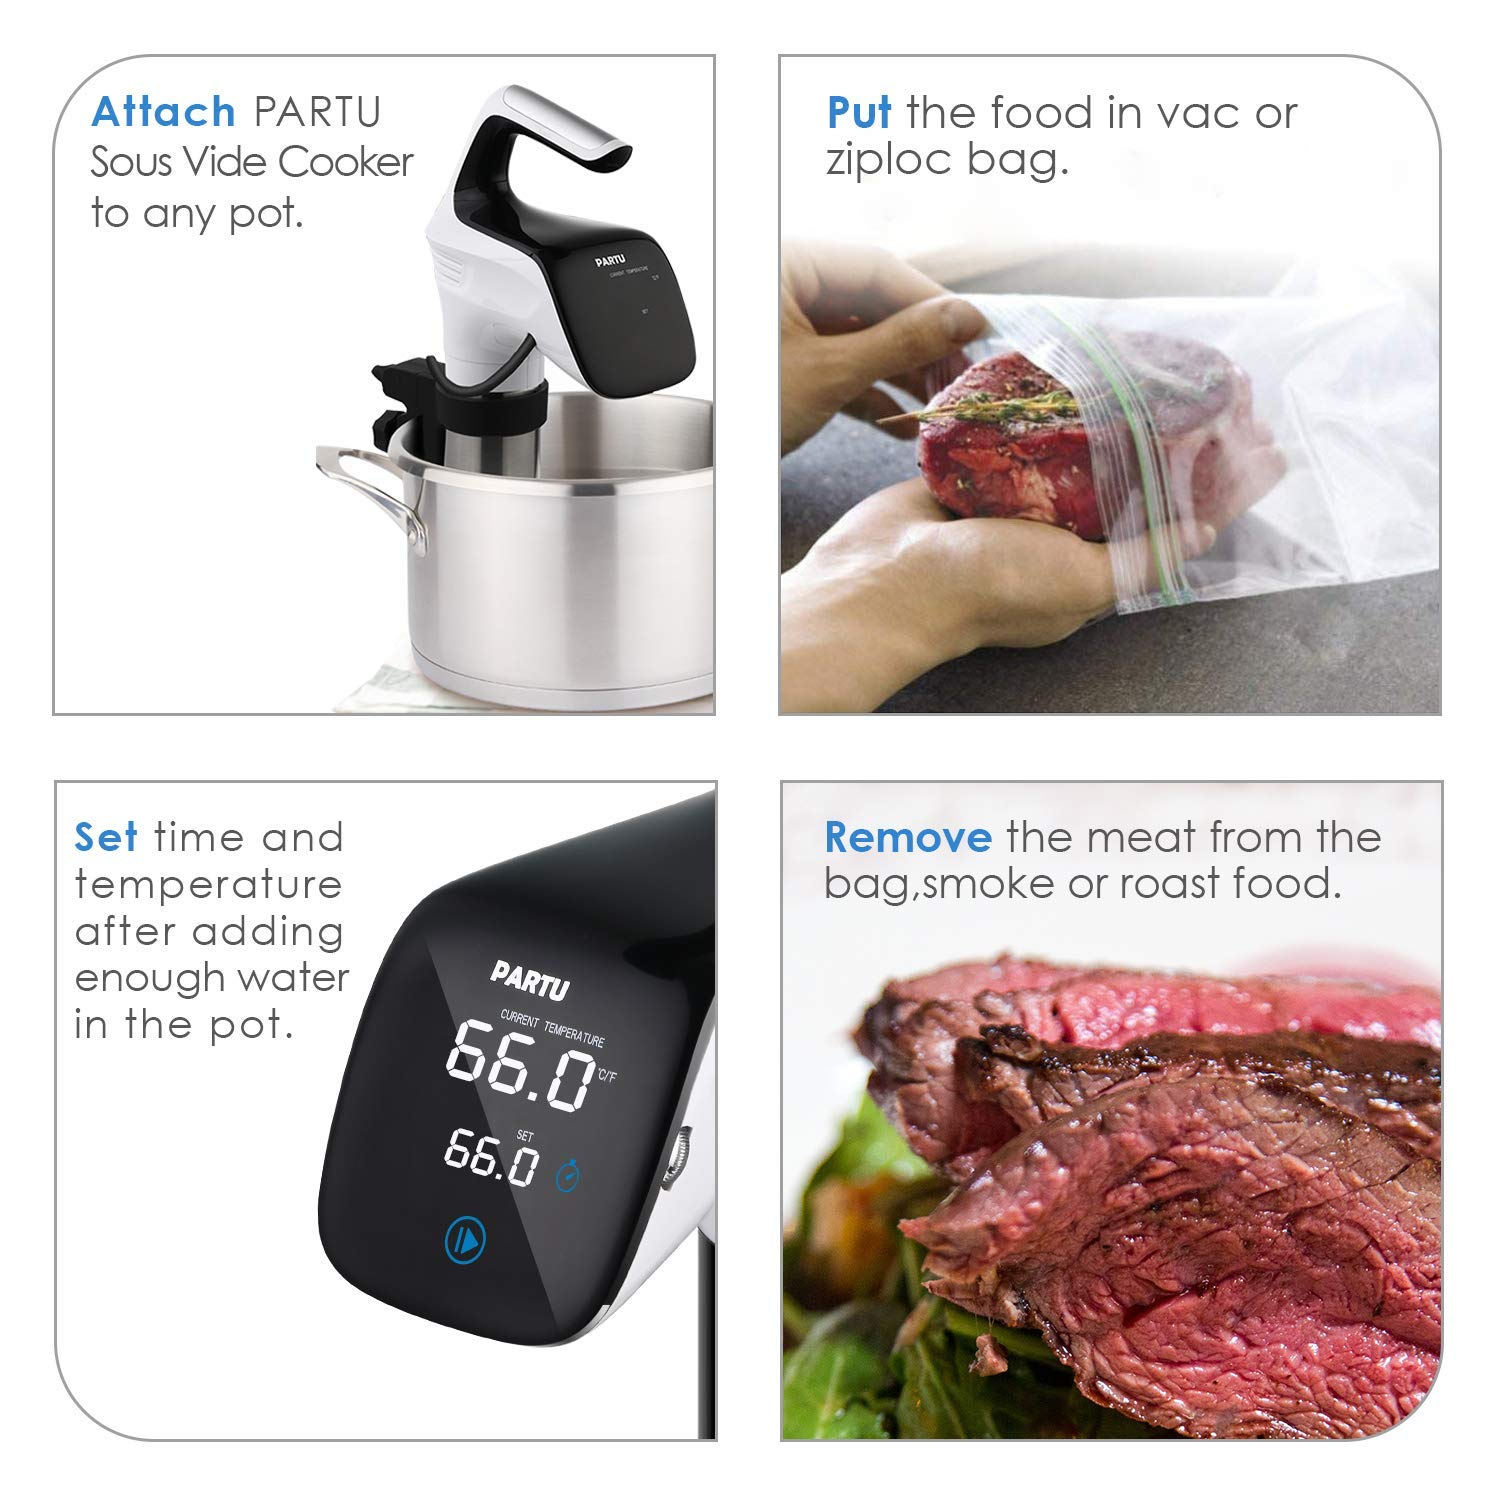 PARTU Sous Vide, Food-Grade Stainless Steel Sous Vide Cooker, 8.2LPM Speed | 850W | Adjusted Clamp | Anti-Moist Curved Panel | Dual Safety Protection with Cooking Guide by  PARTU (Image #4)